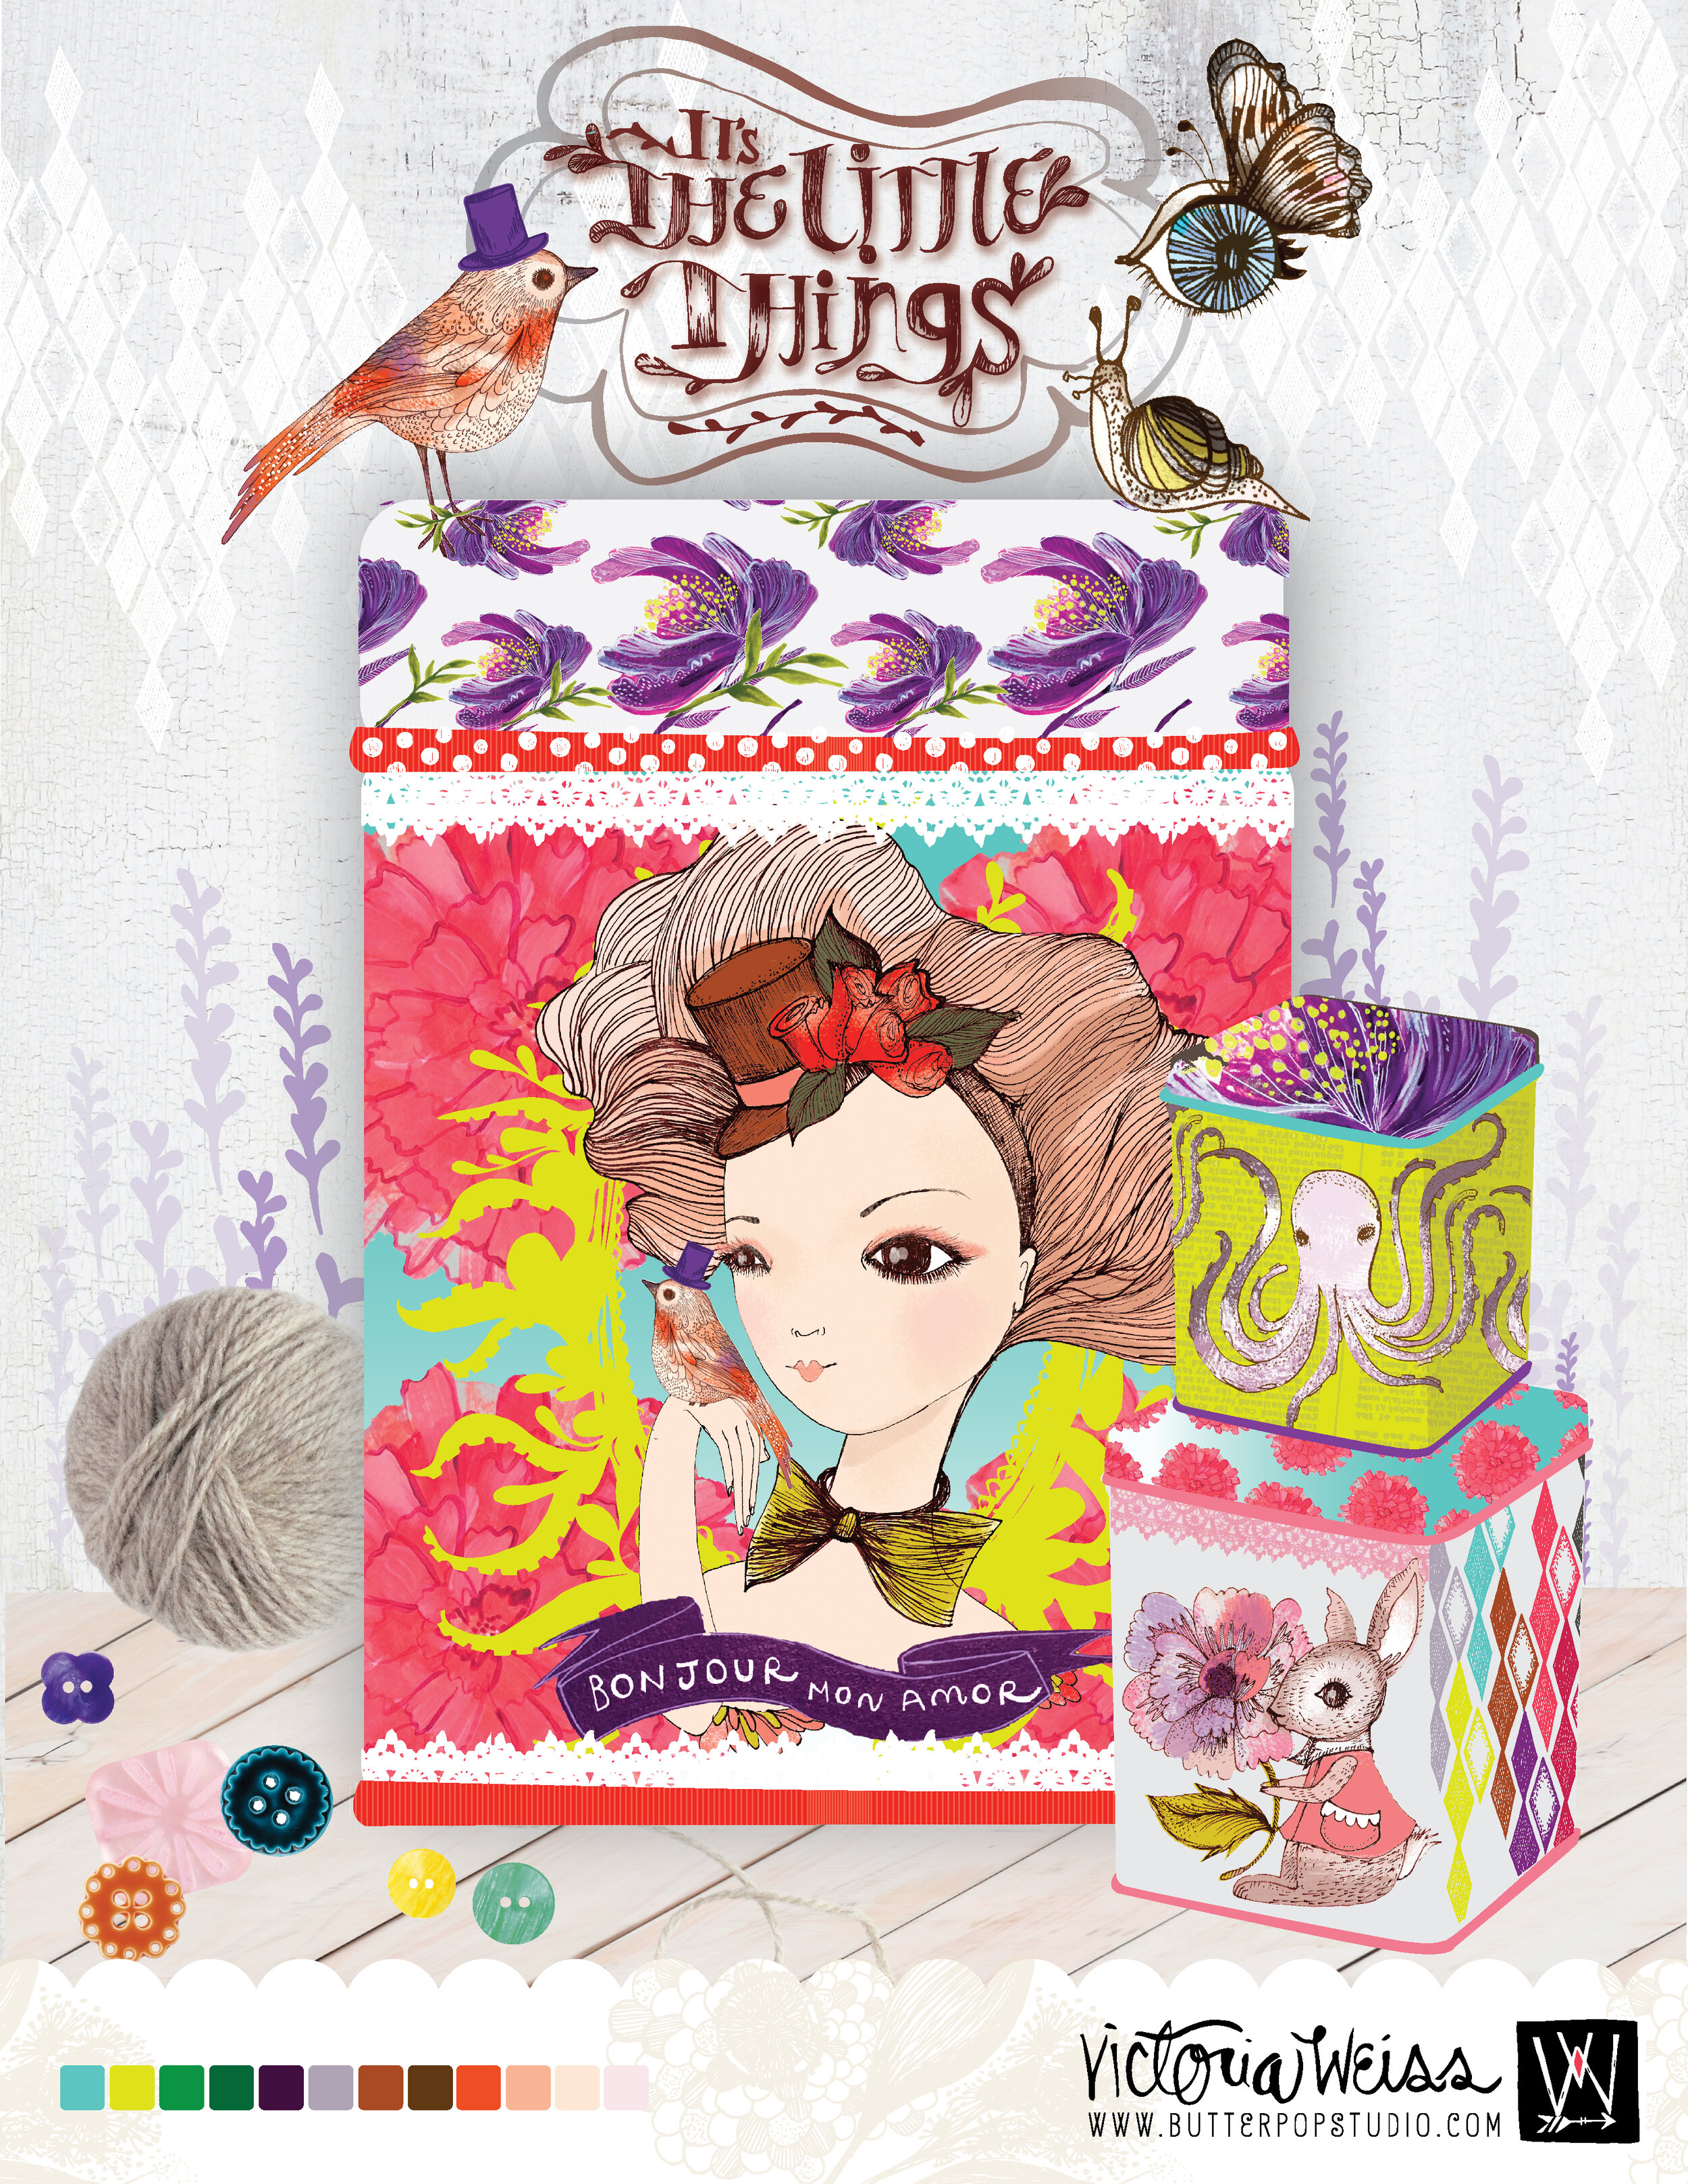 Title: The little things, Design and Illustration on Products. Analogue Illustration Finalized Digitally..